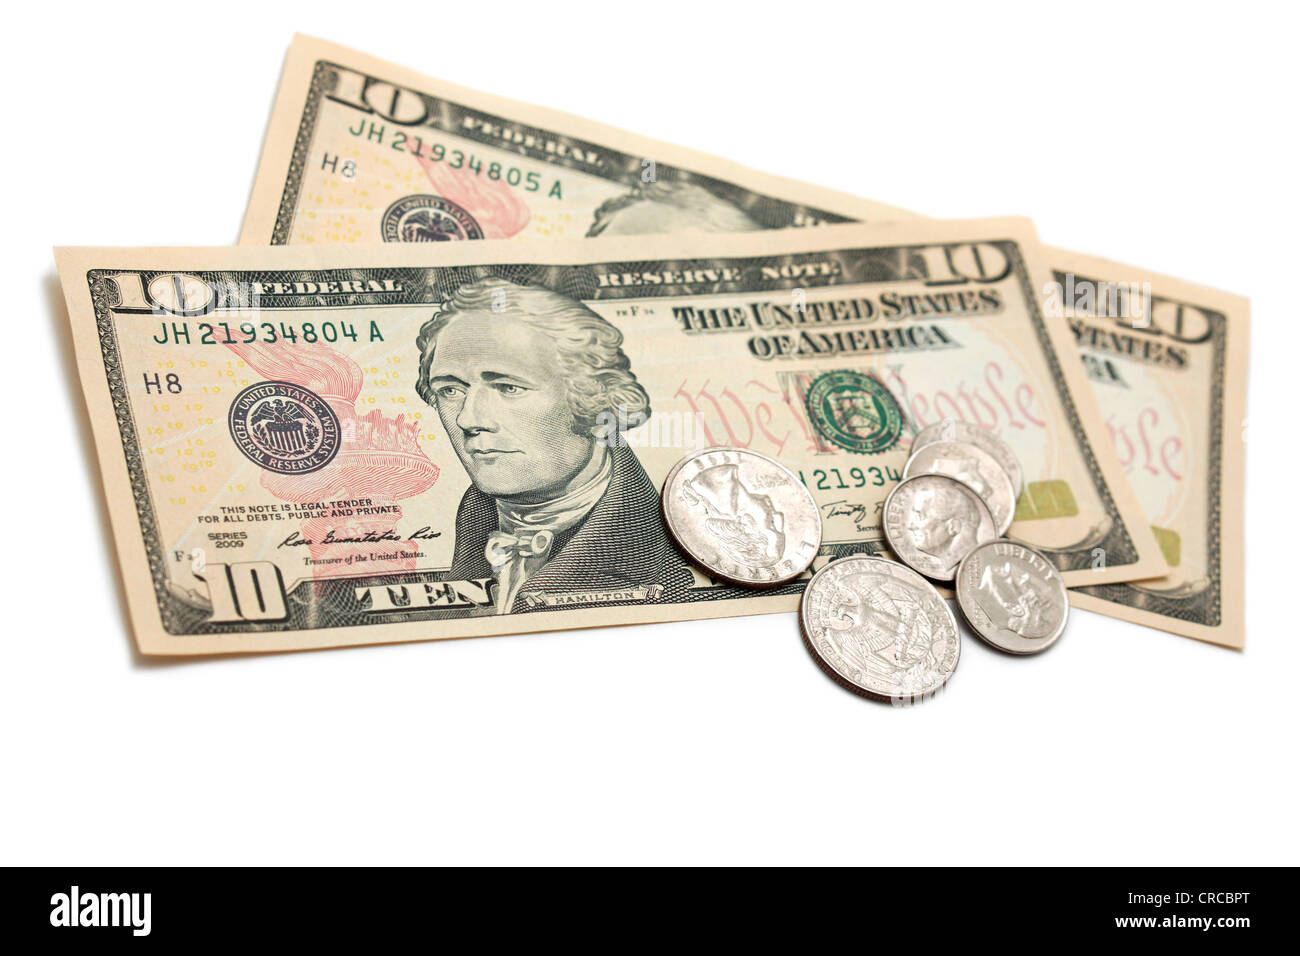 Dollar Bills and Coins, US Currency Dollars - Stock Image